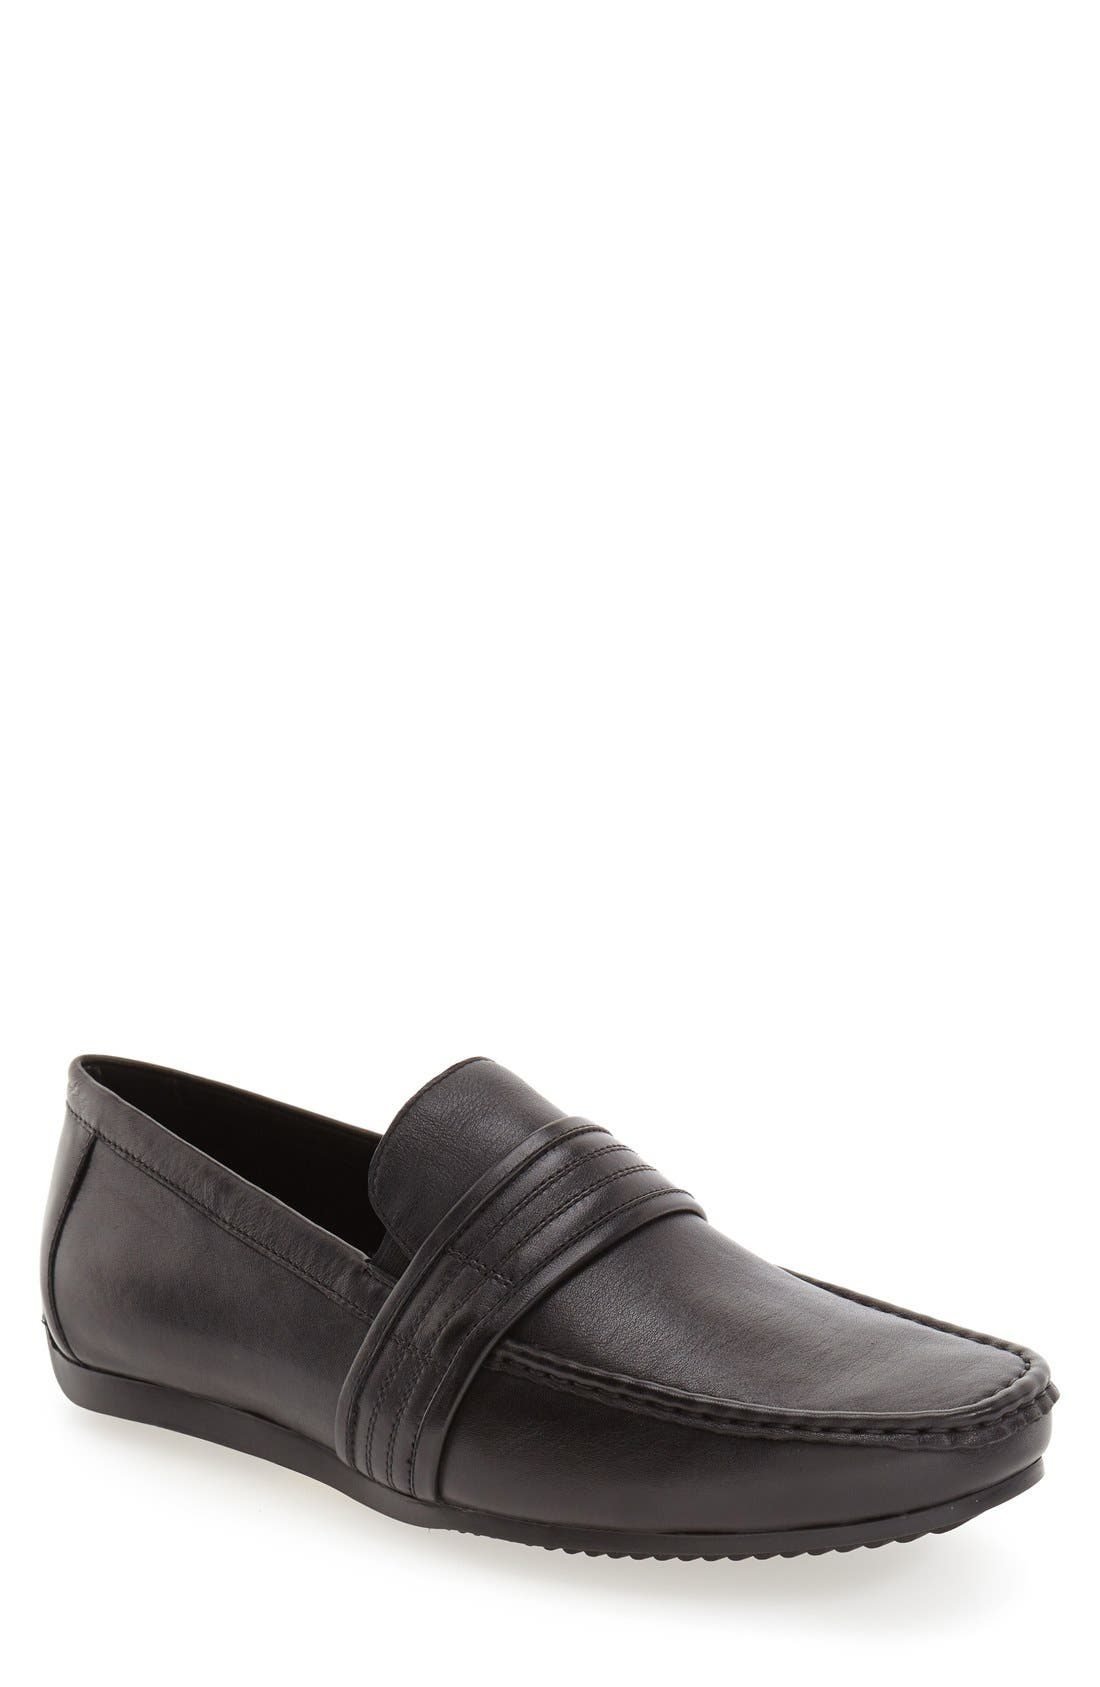 Zanzara 'Van Eyck' Moc Toe Loafer (Men)